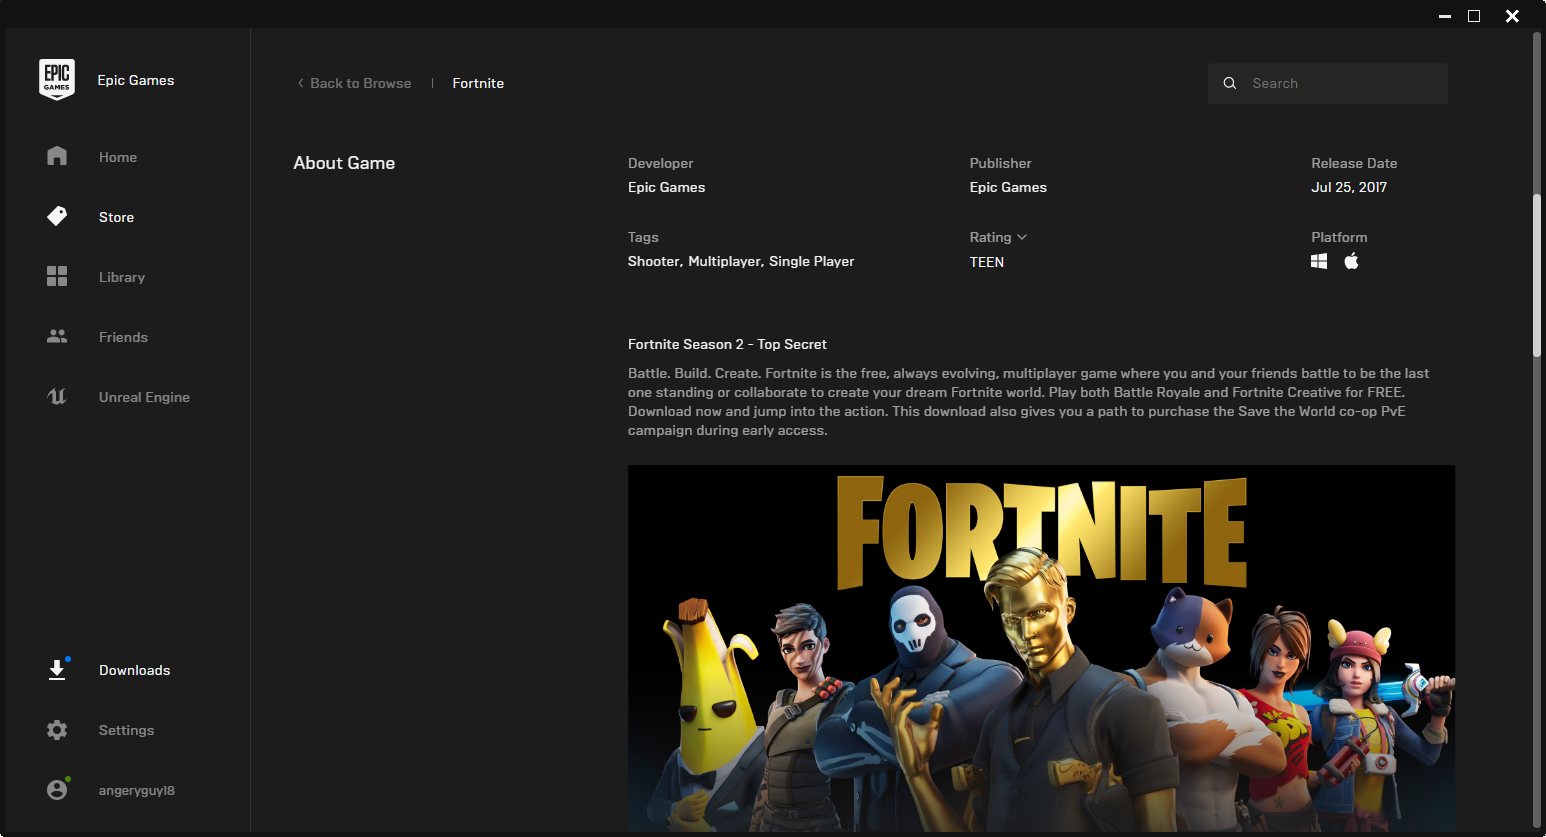 Fortnite Windows 10 | How to Download & Play on PC?